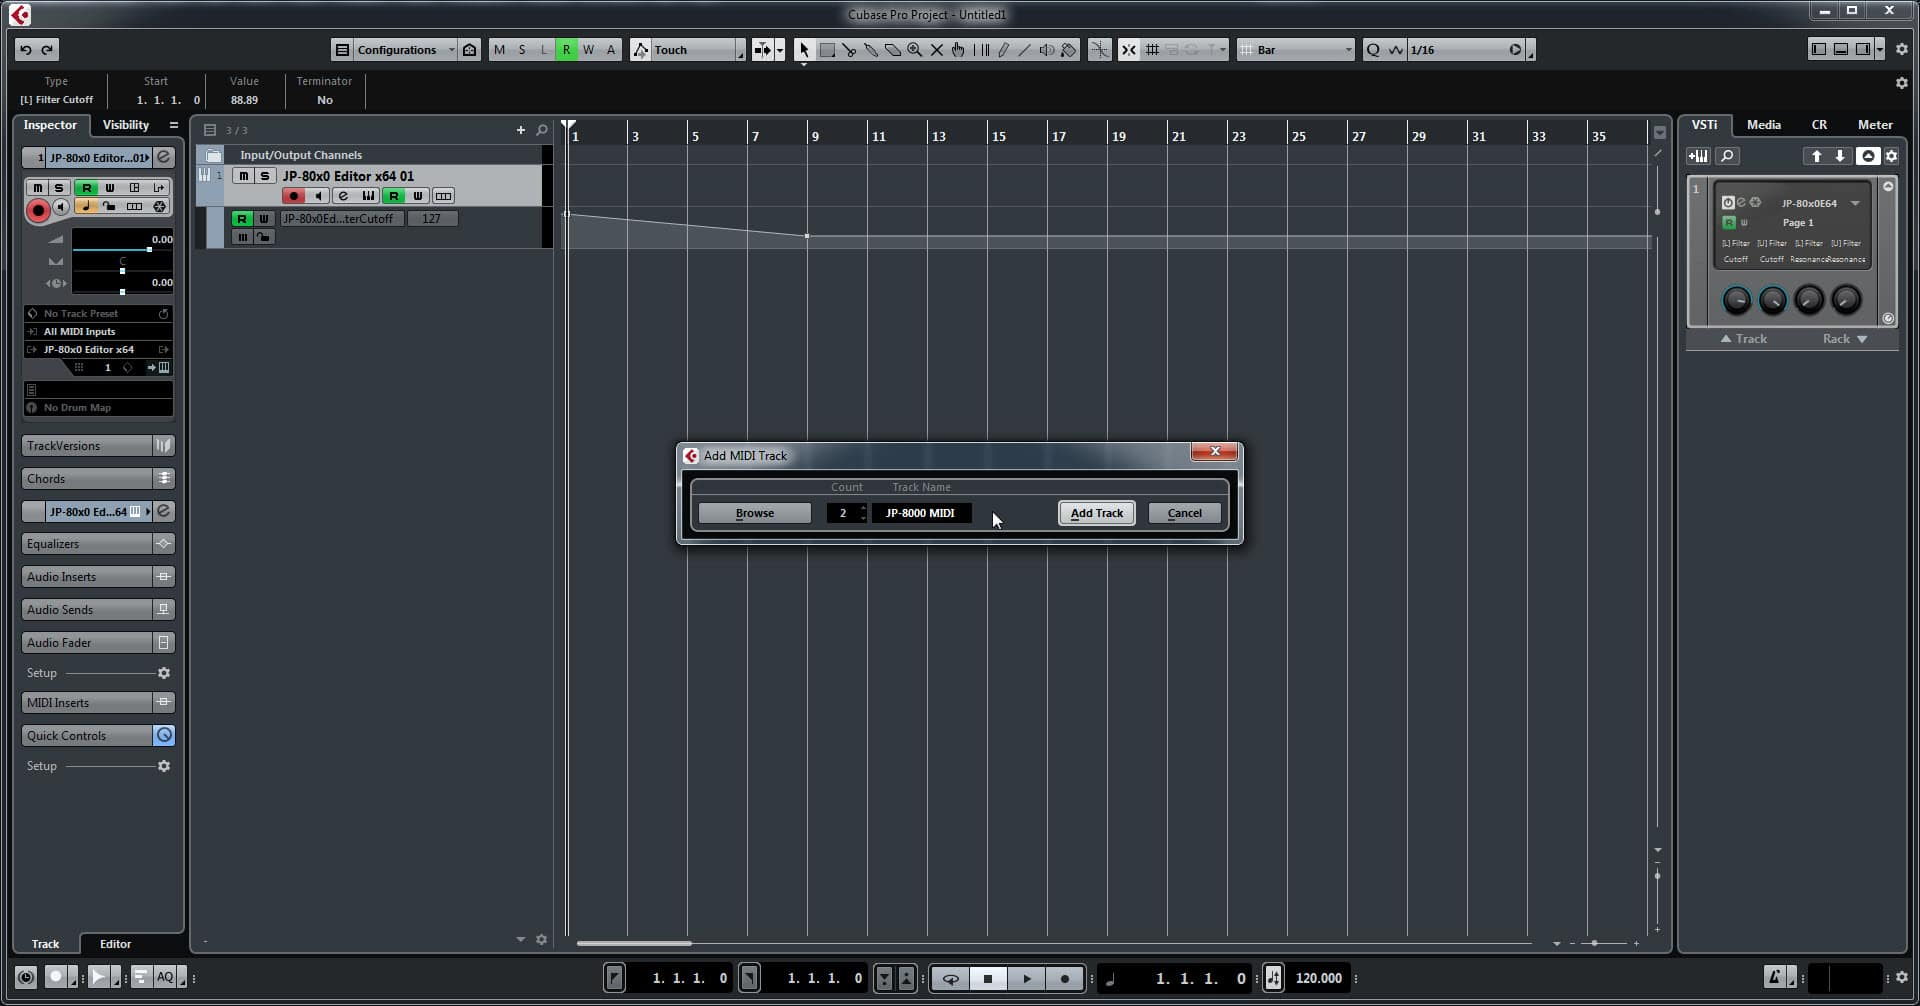 Steinberg Cubase Config - Add Track Name and Number of Tracks